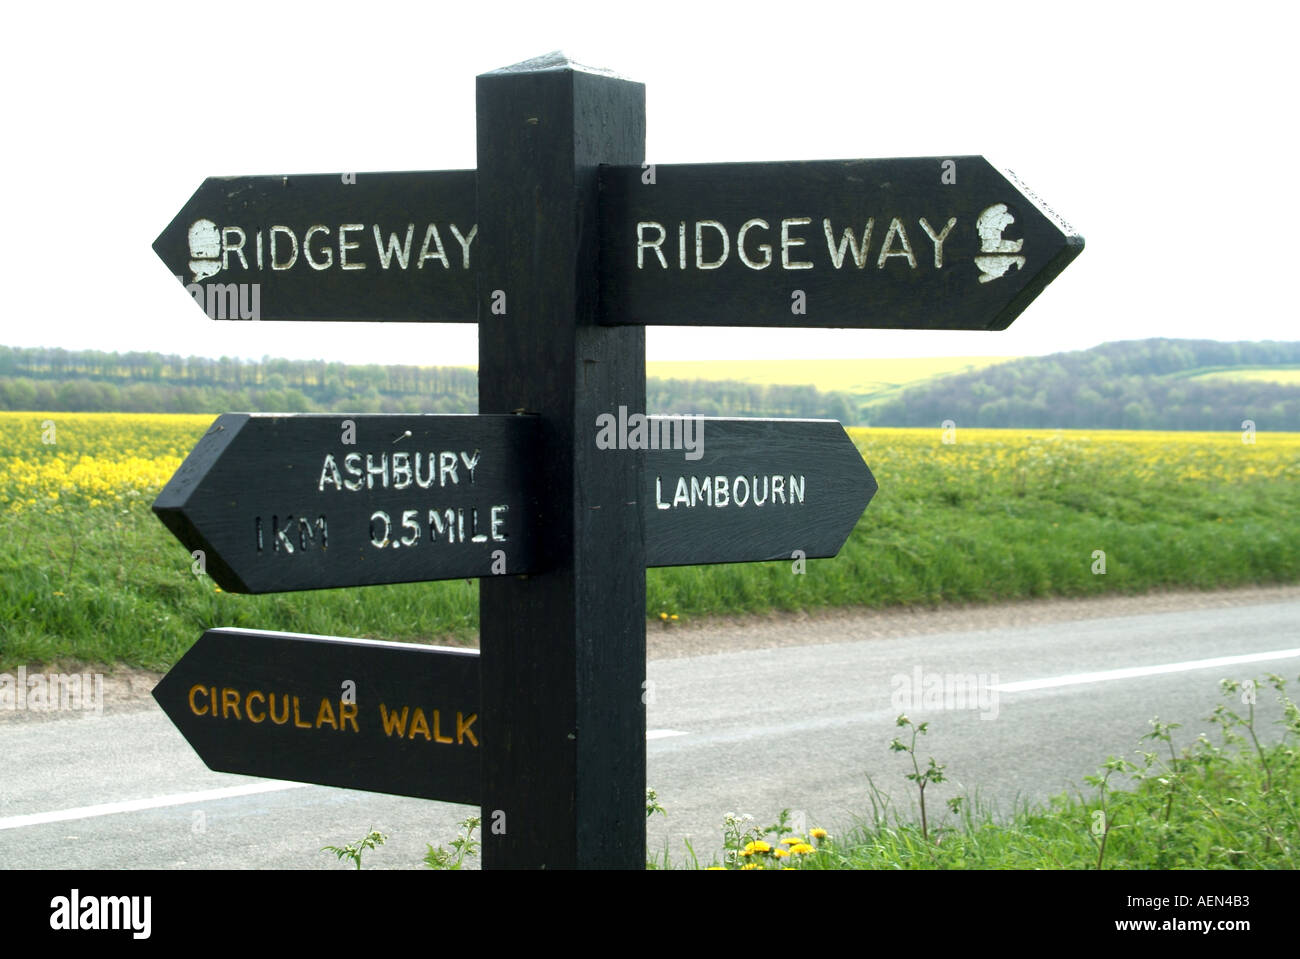 Signposts for the Ridgeway footpath near Ashbury on the Oxfordshire Berkshire borders - Stock Image